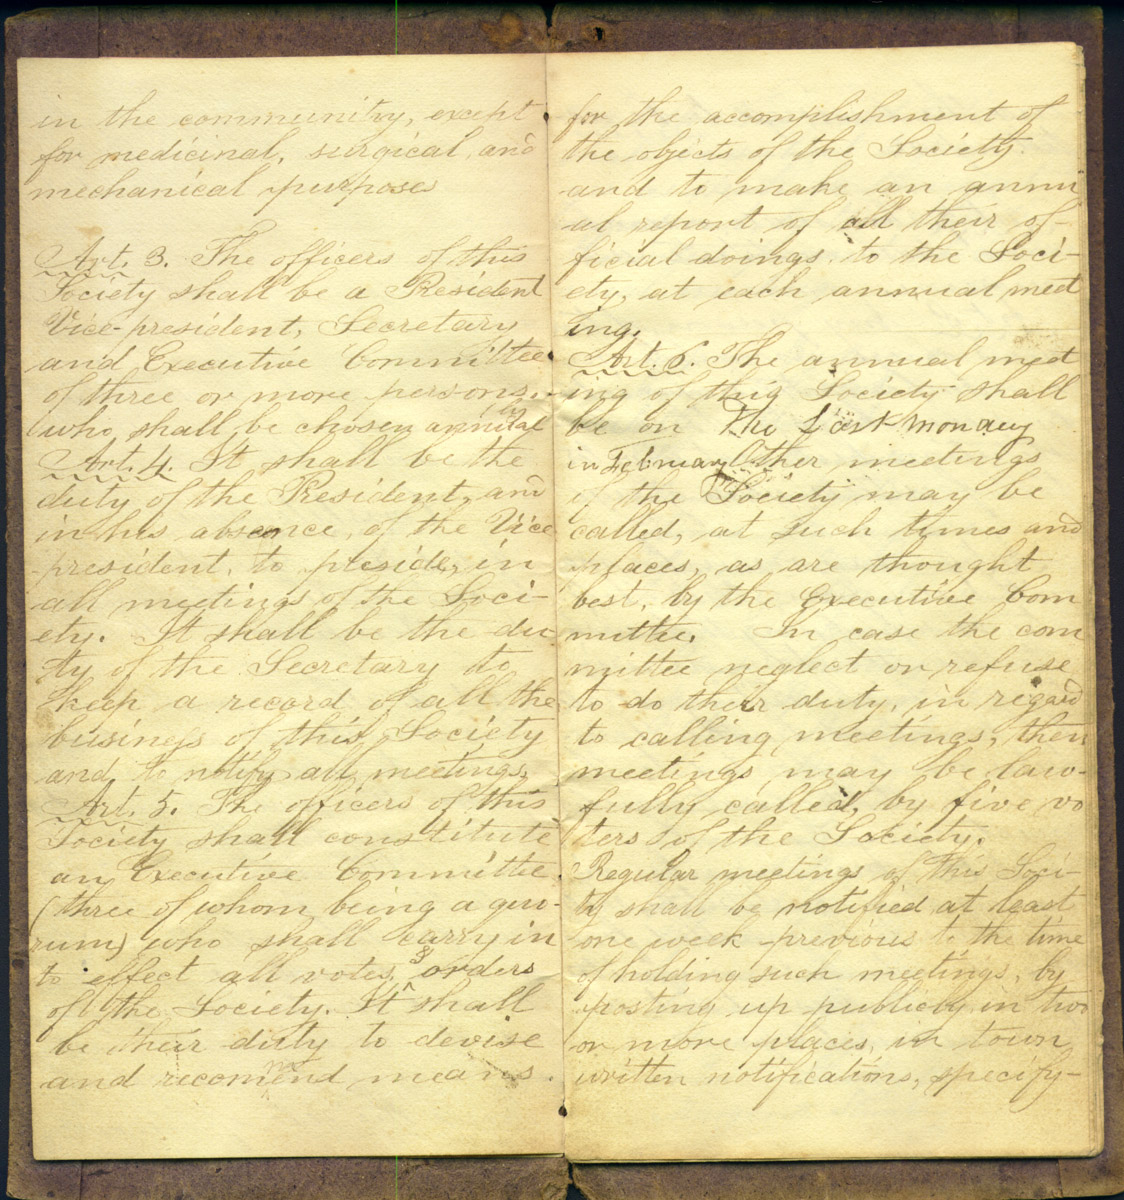 Constitution and Founders of the Cranberry Isles Temperance Society circa 1840